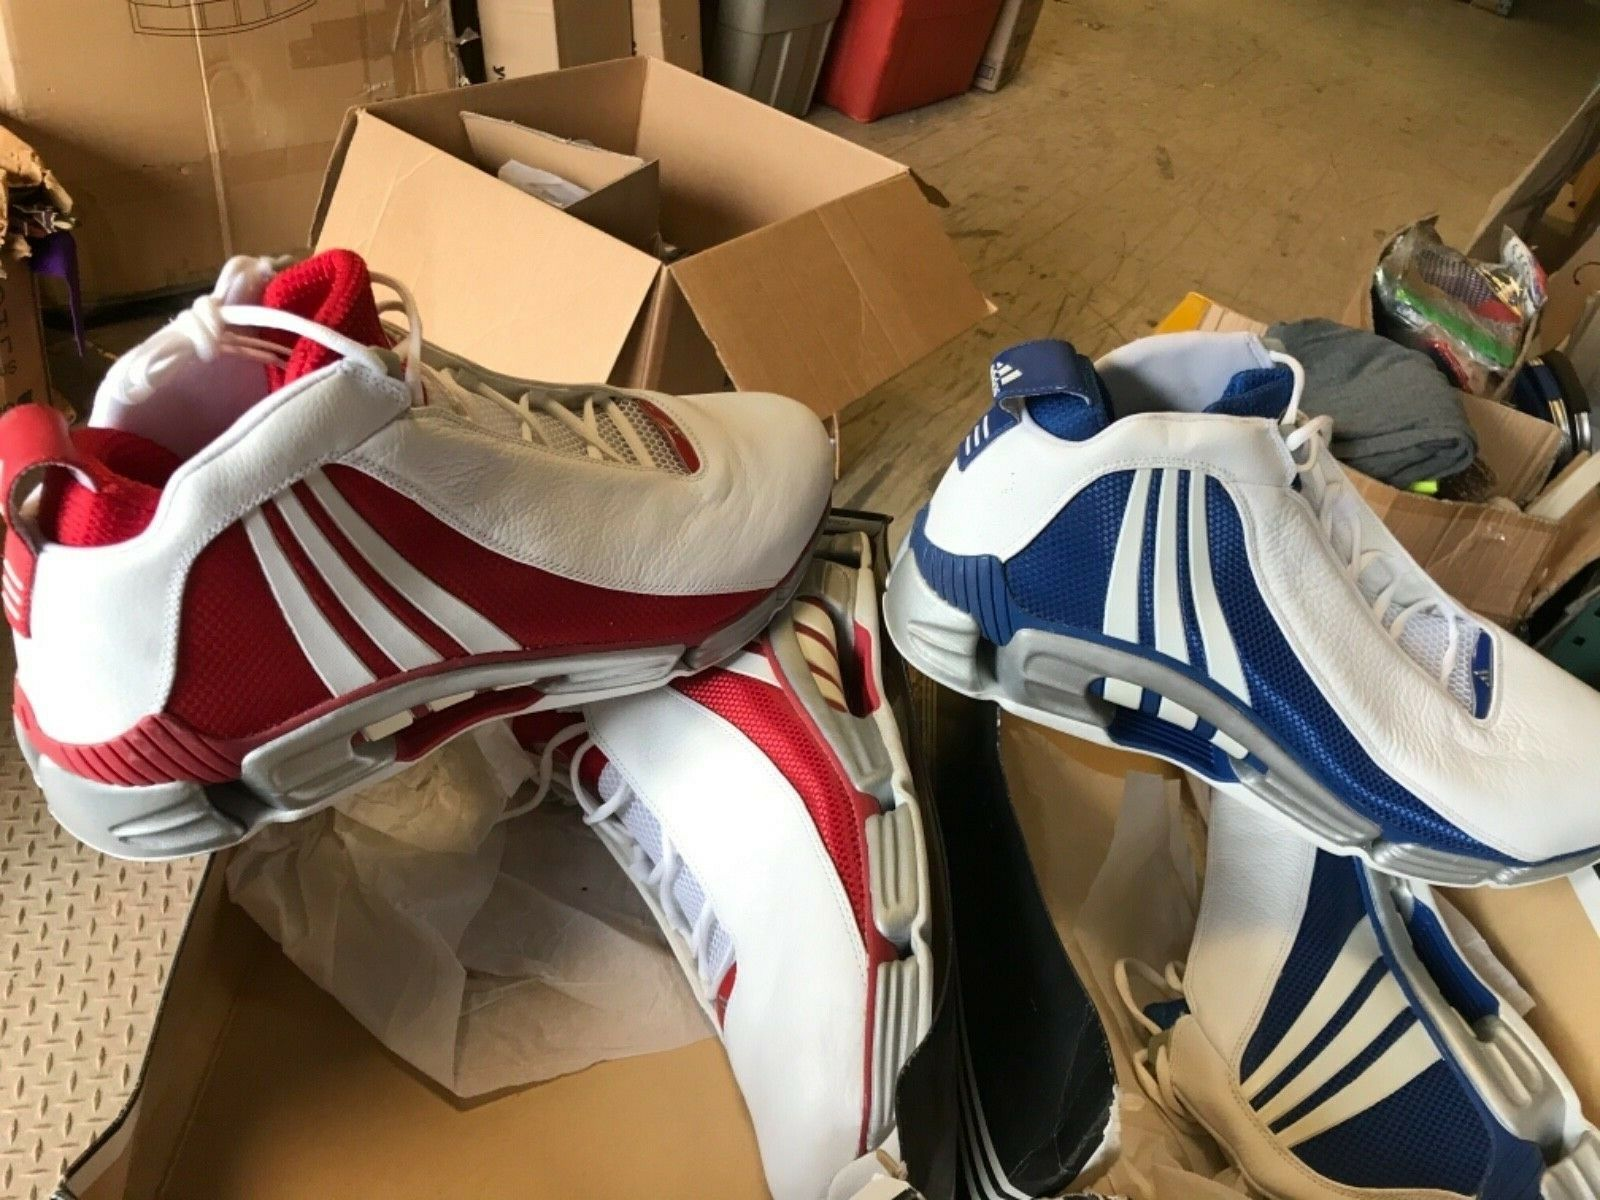 2 New Adidas Size 19 Sneakers Men's Superstar basketball